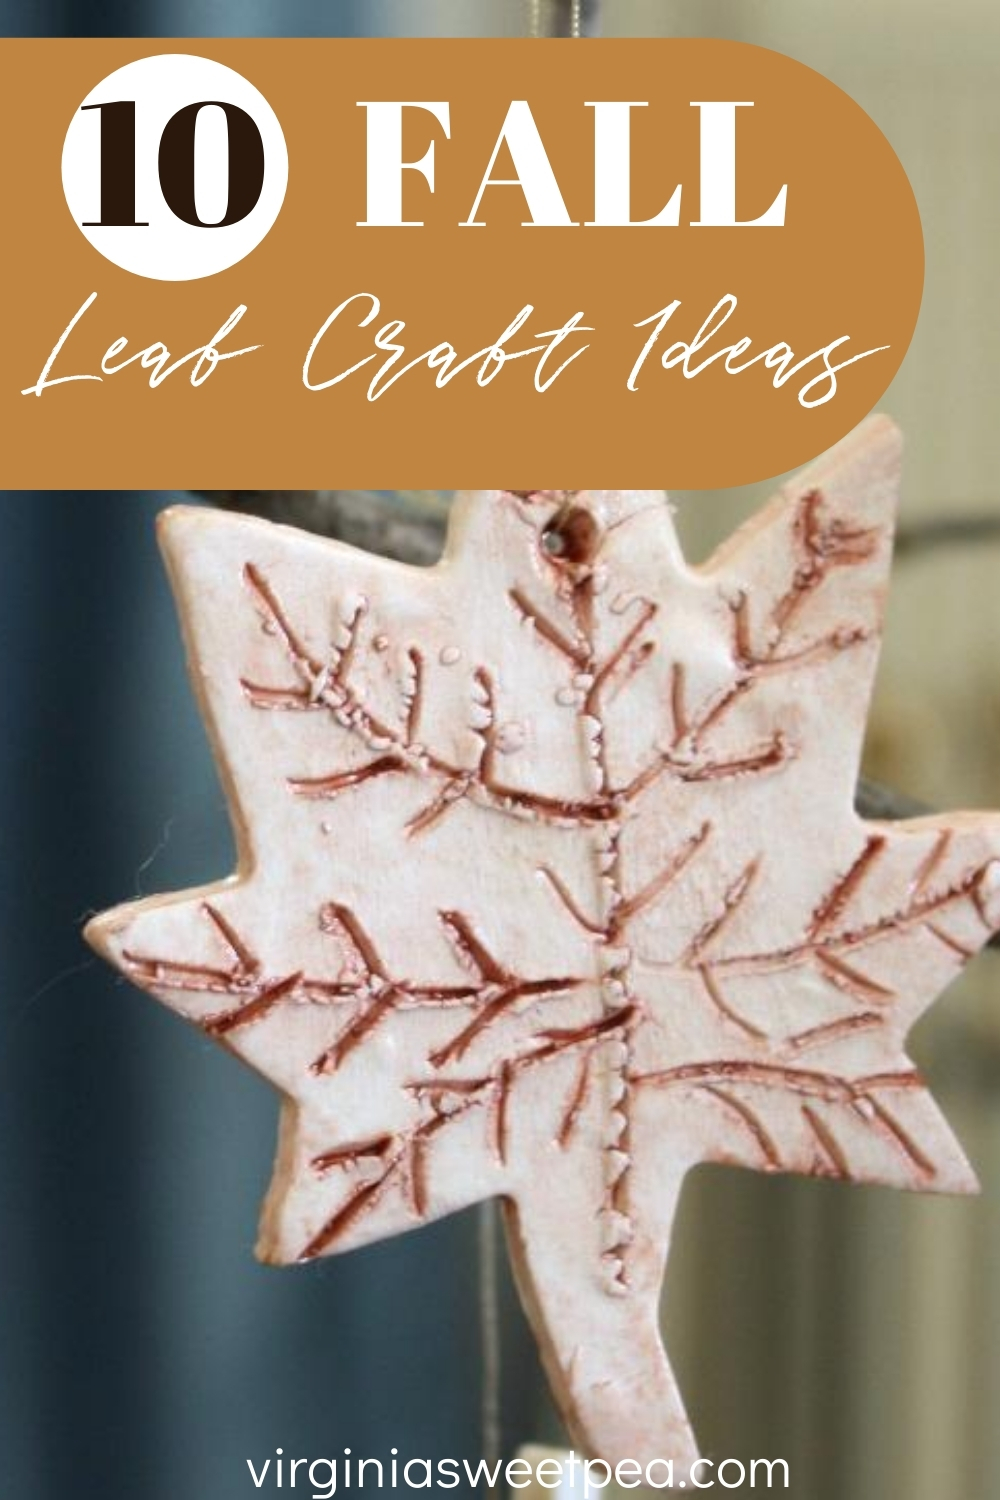 10 Fall Leaf Craft Ideas - Leaves are an iconic fall home decor item.  Get ideas for crafts that you can make for your home that are leaf themed.  #fallcrafts  via @spaula